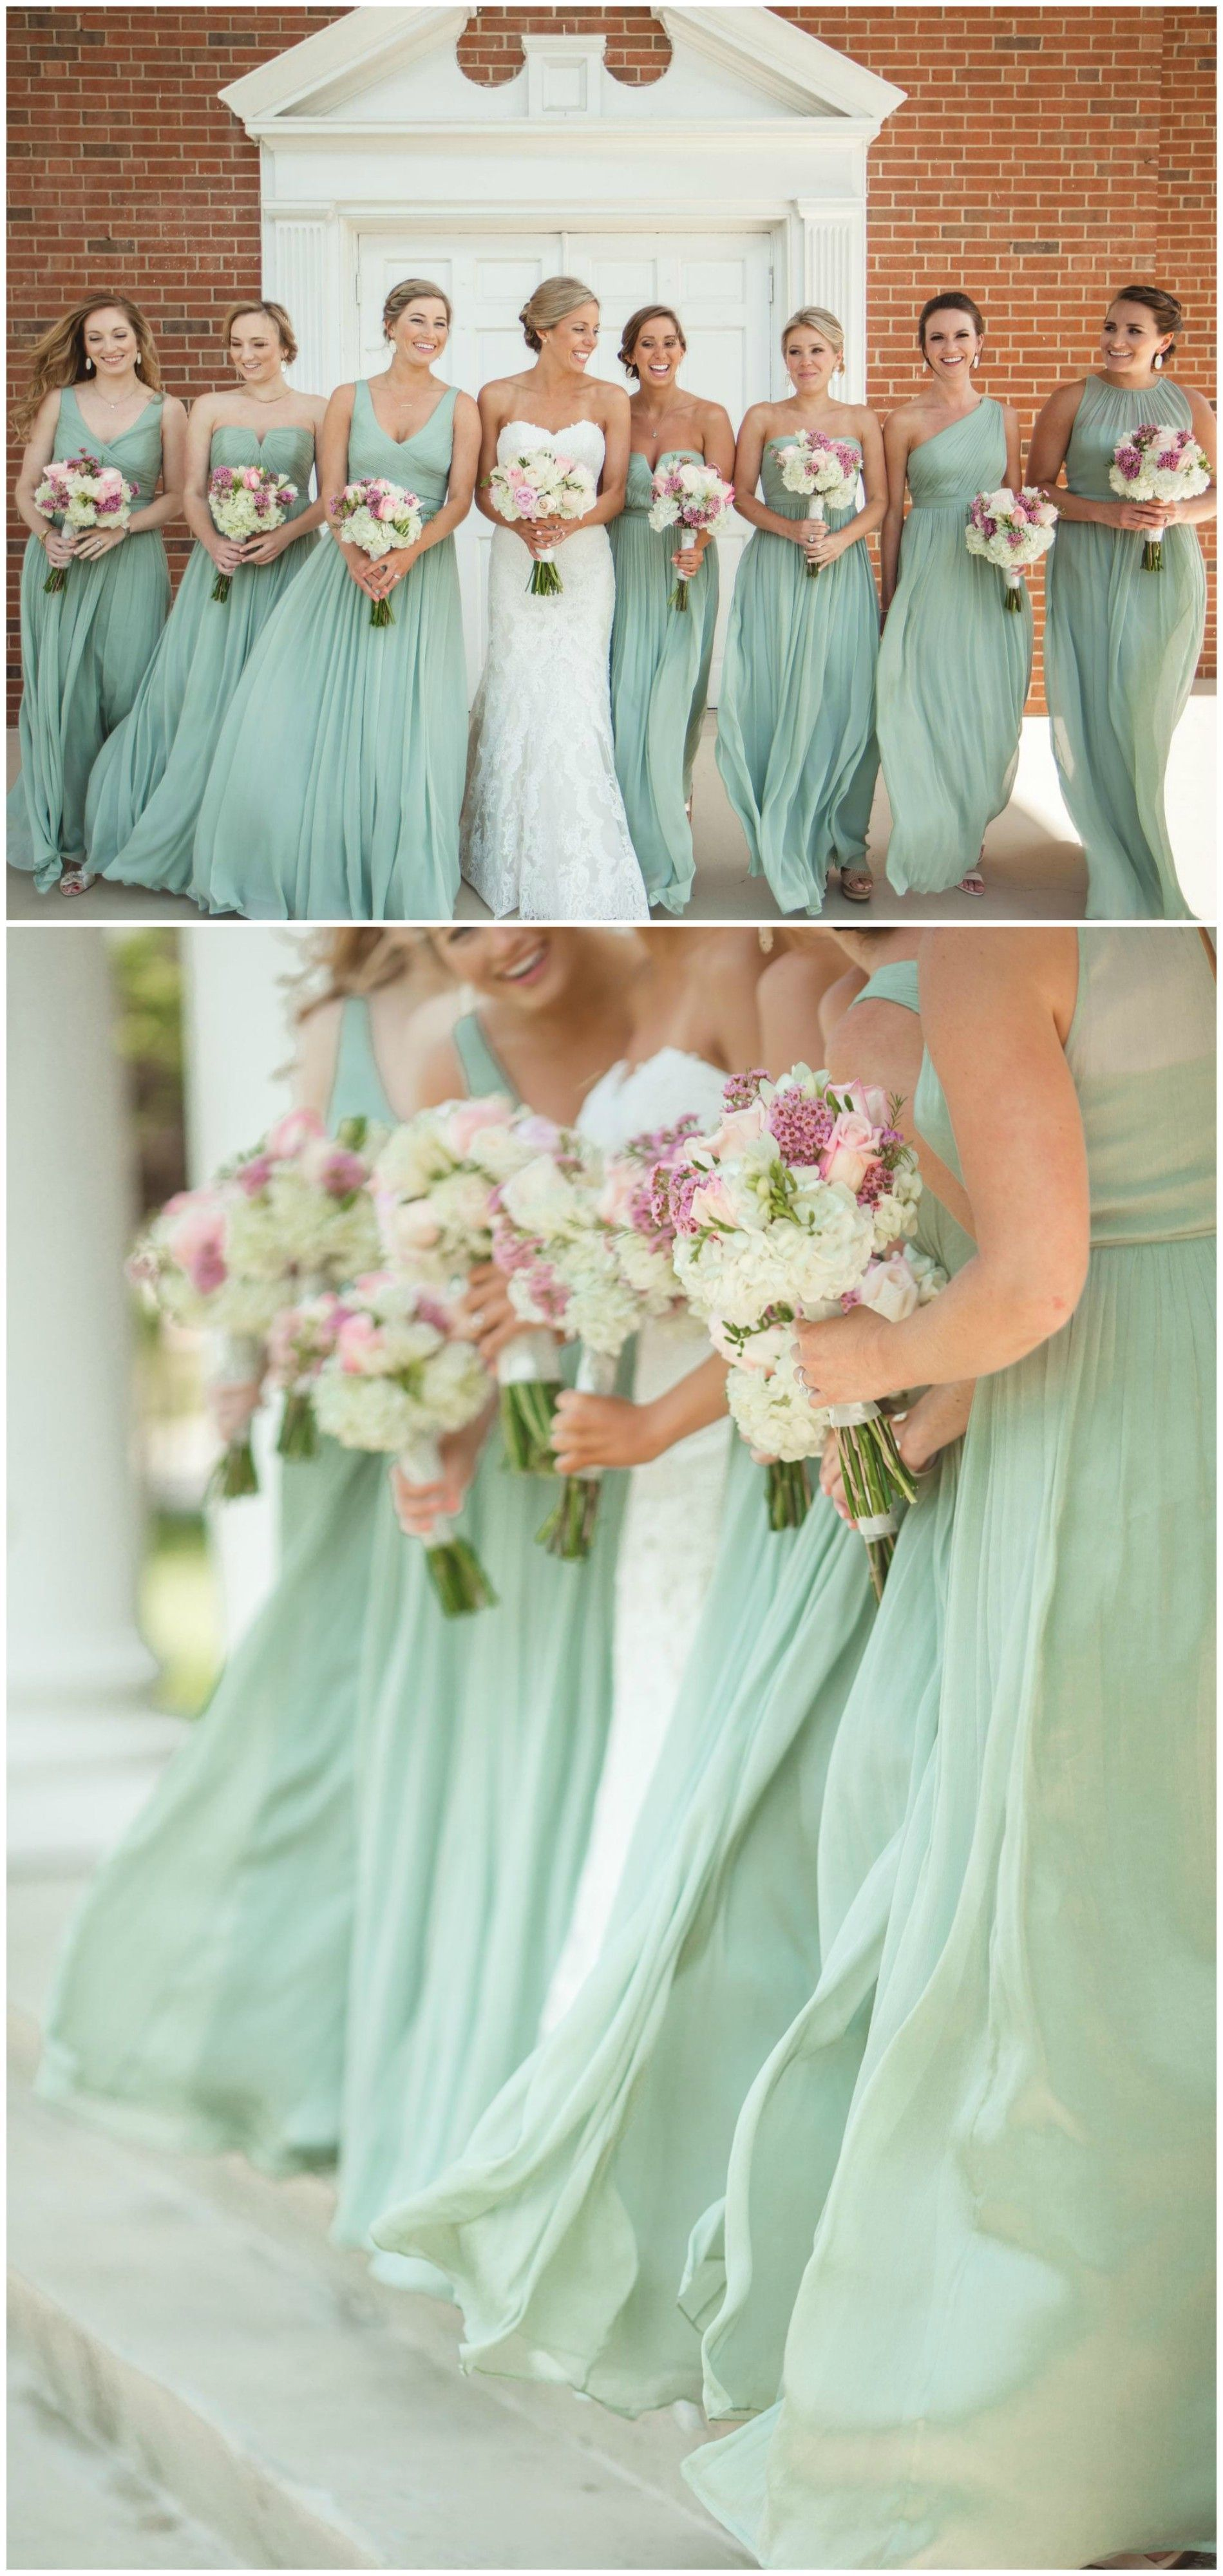 0401b6652435 Southern bridal party, pastel green bridesmaid dresses, chiffon gowns, pink  and white floral wedding bouquets, repin to your own inspiration board //  Clint ...